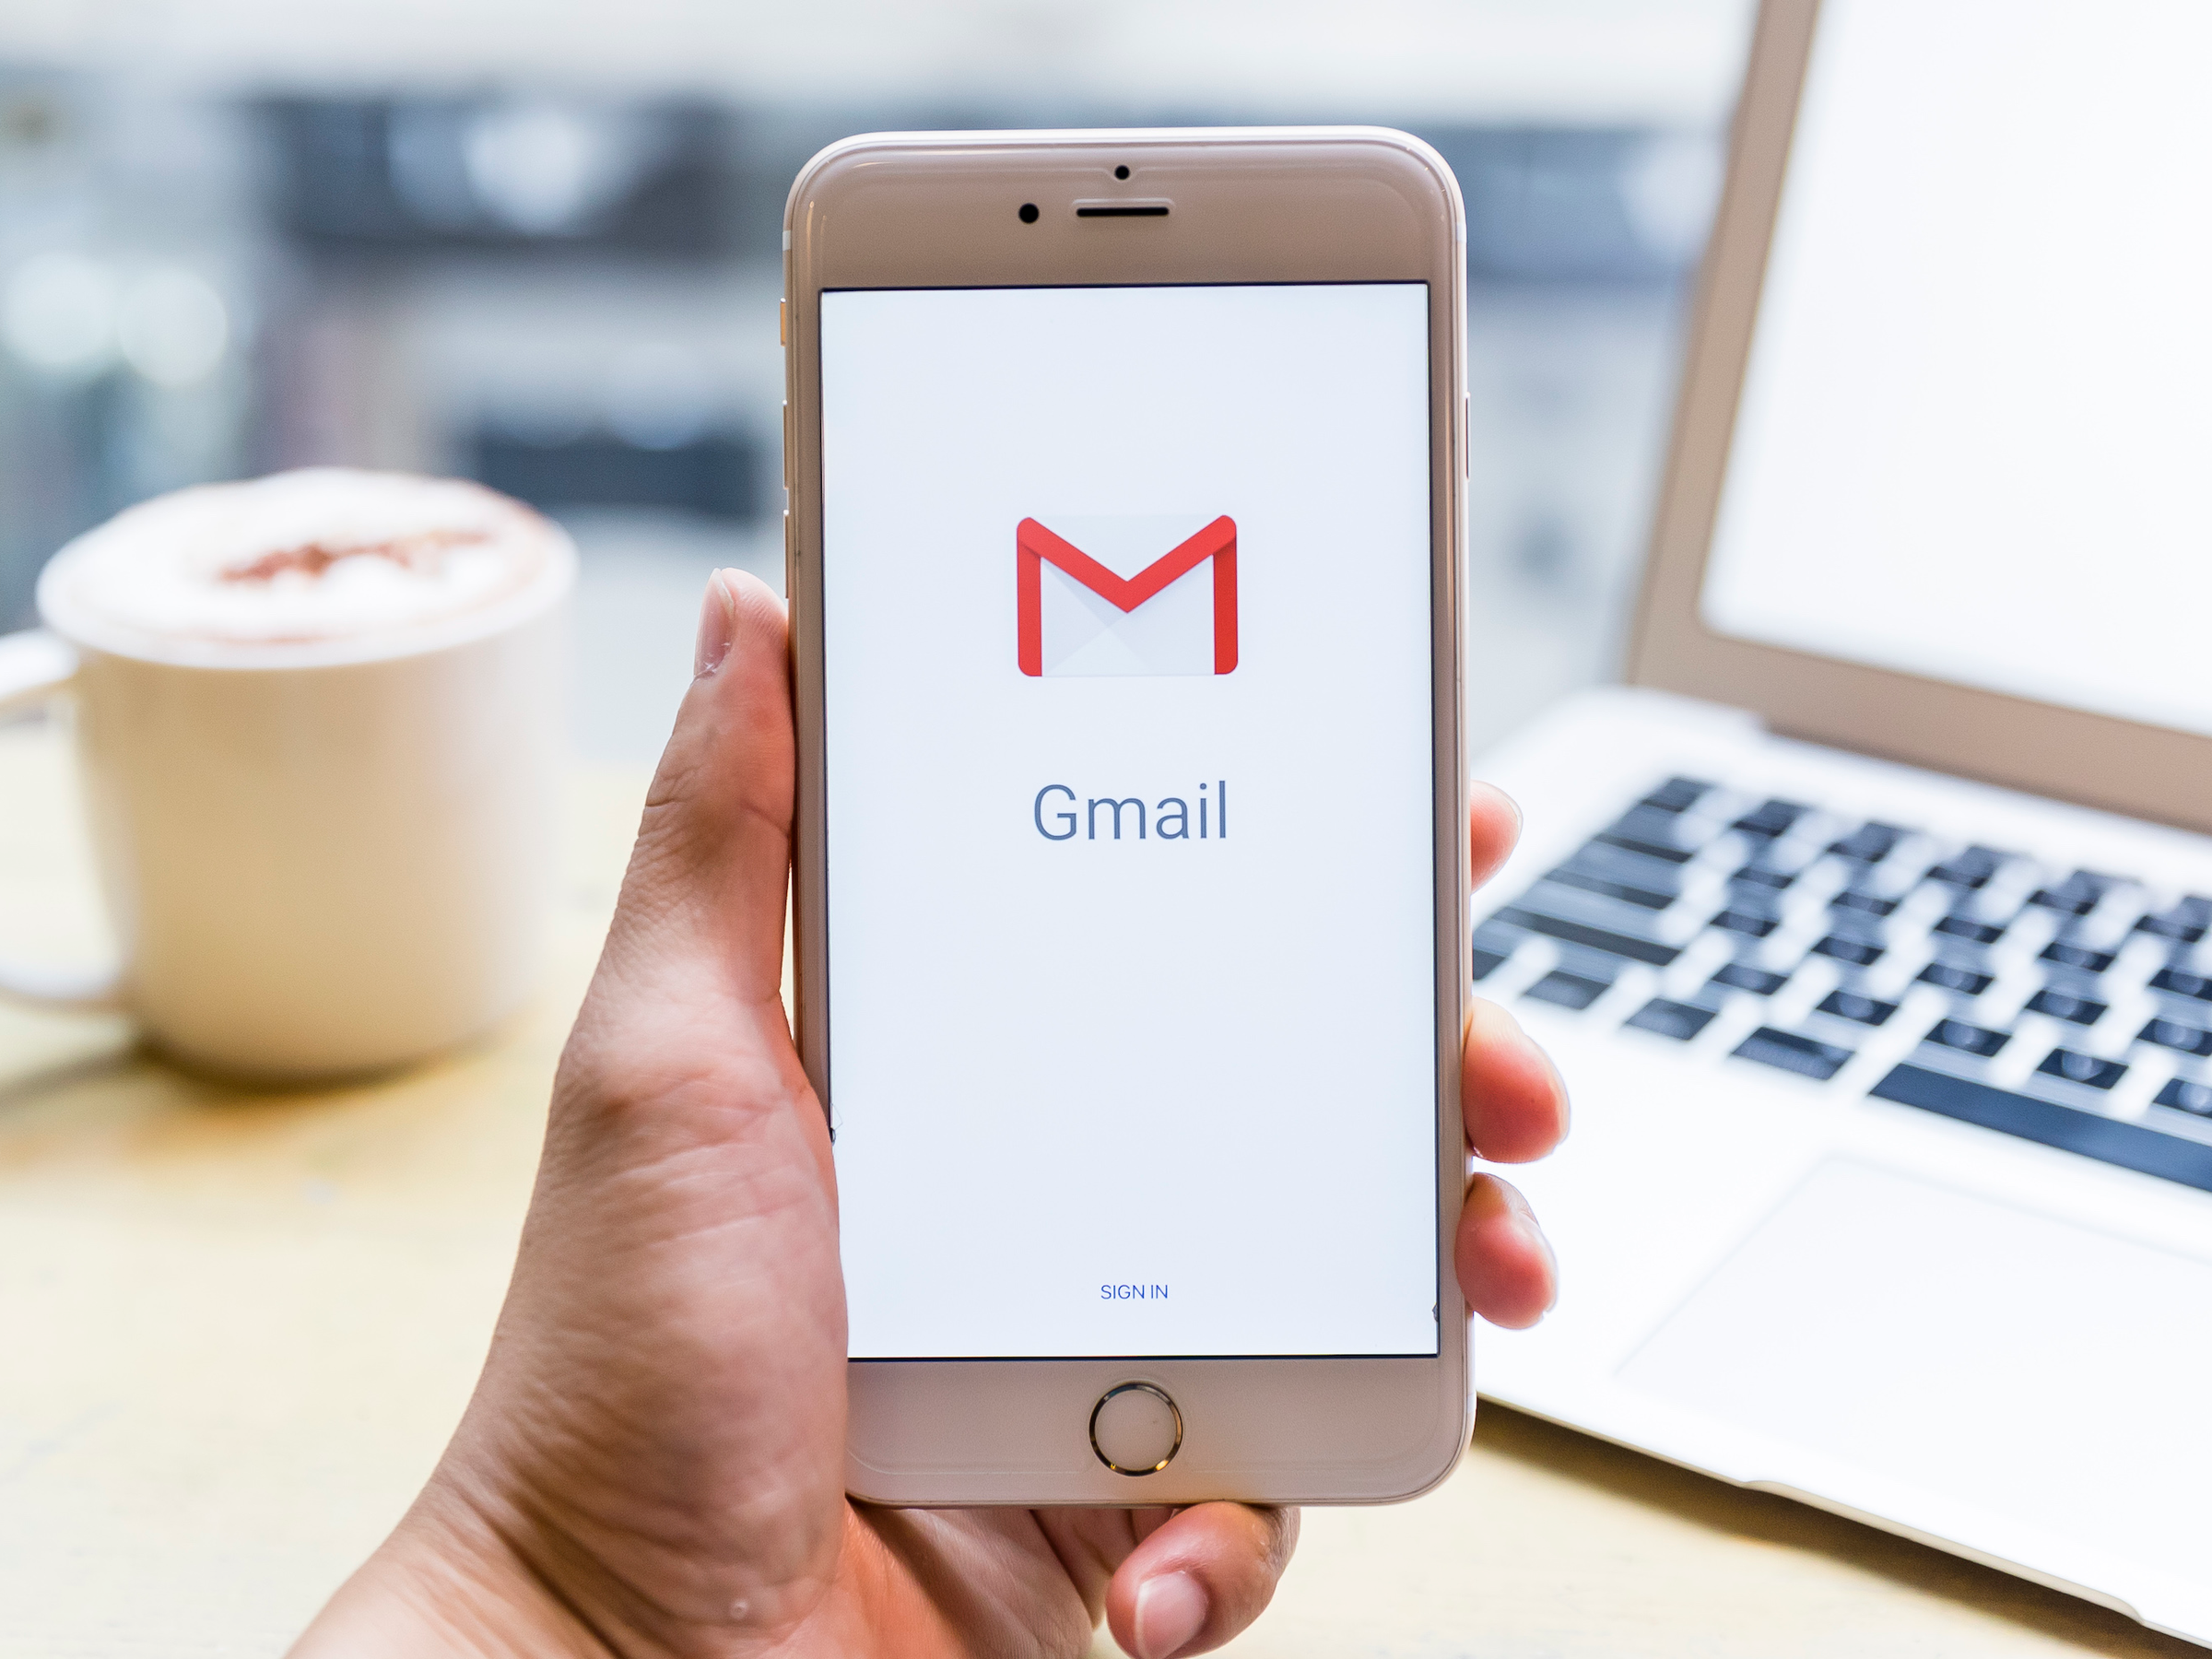 How to send a video through Gmail using Google Drive or an